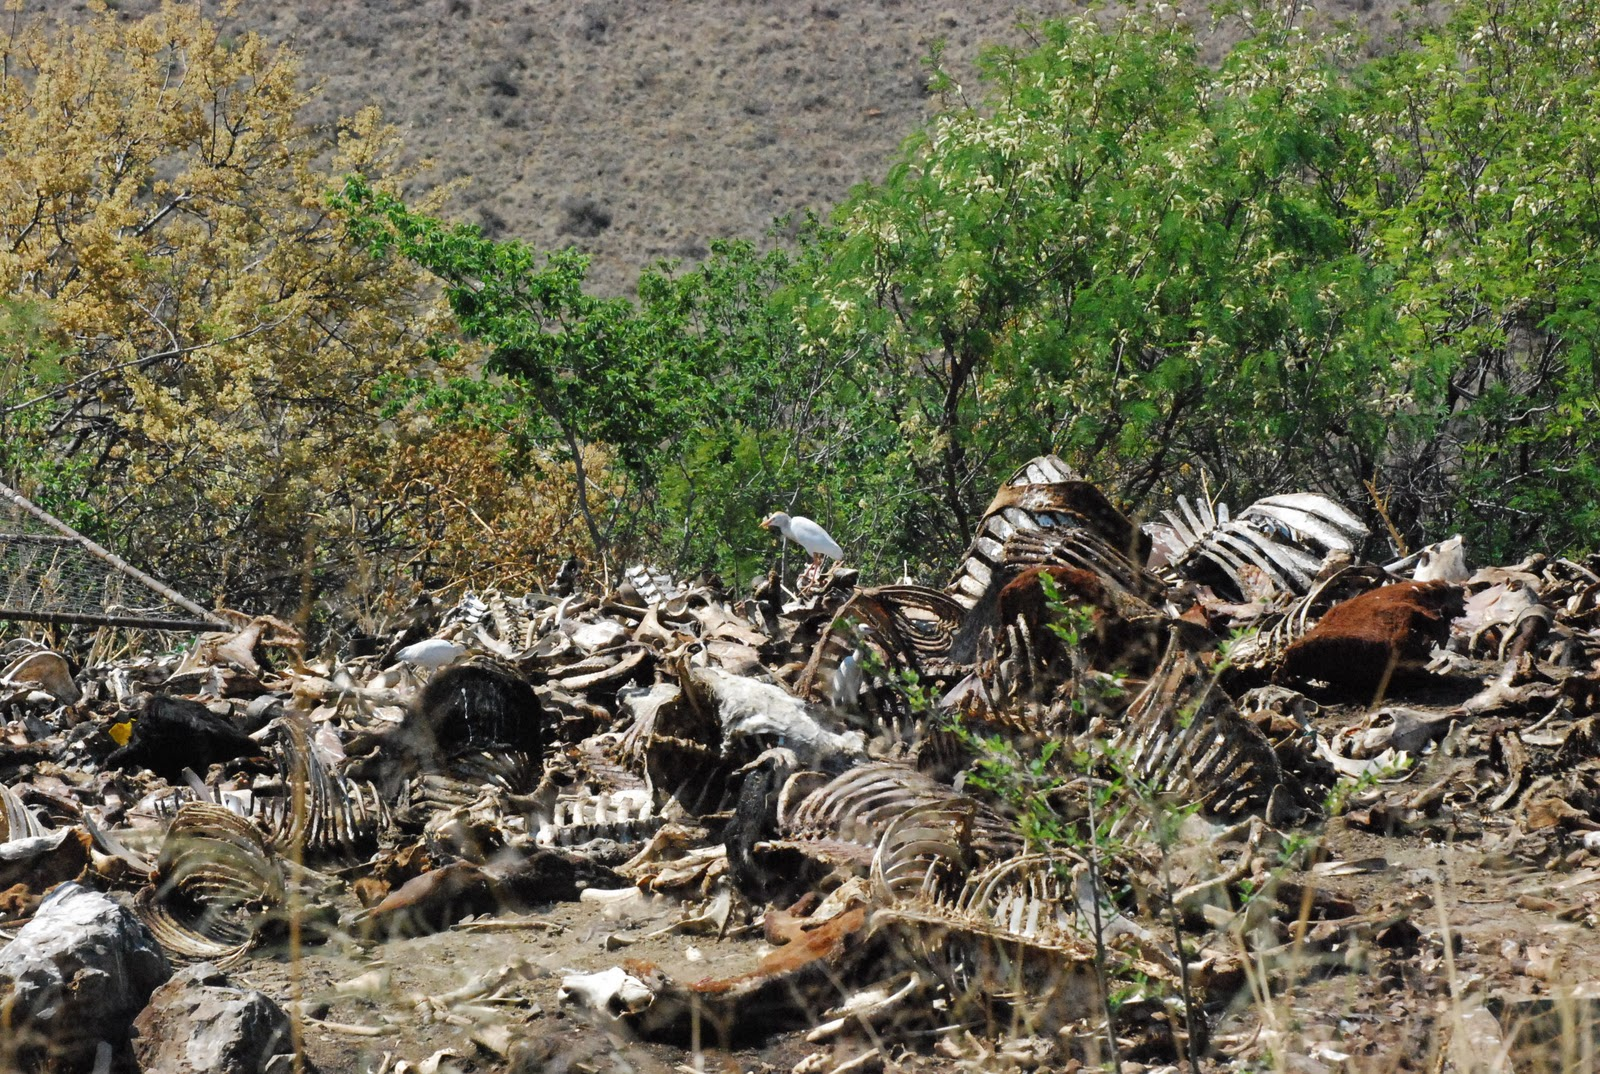 African Children Starving Vulture Place of the vultures andAfrican Children Starving Vulture